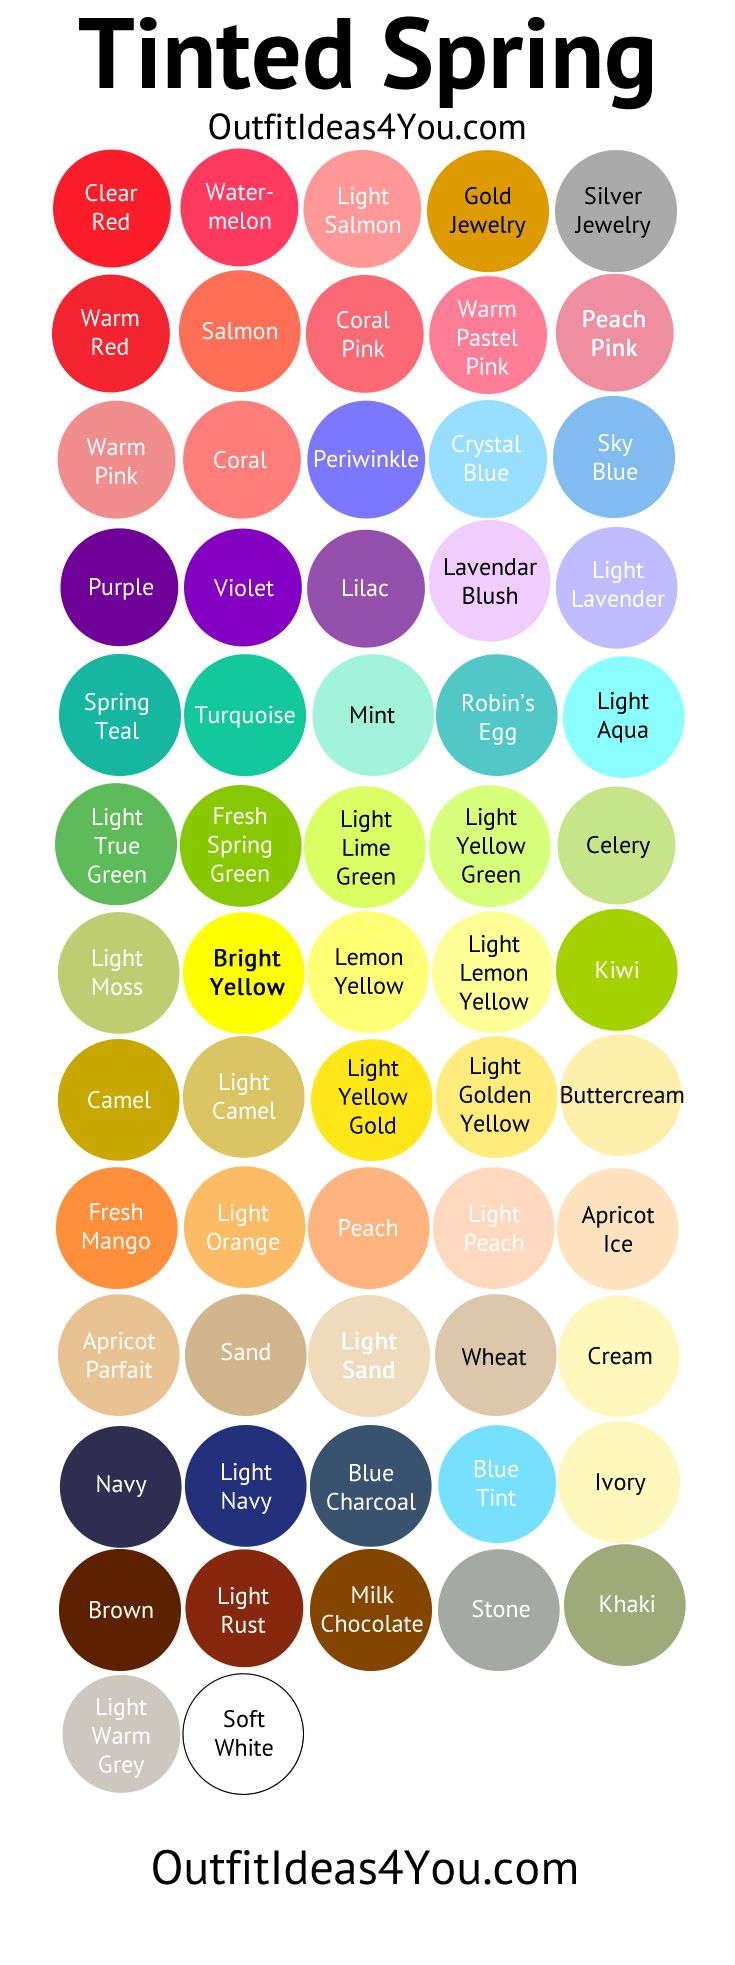 Tinted Spring Color Palette (Light Spring)